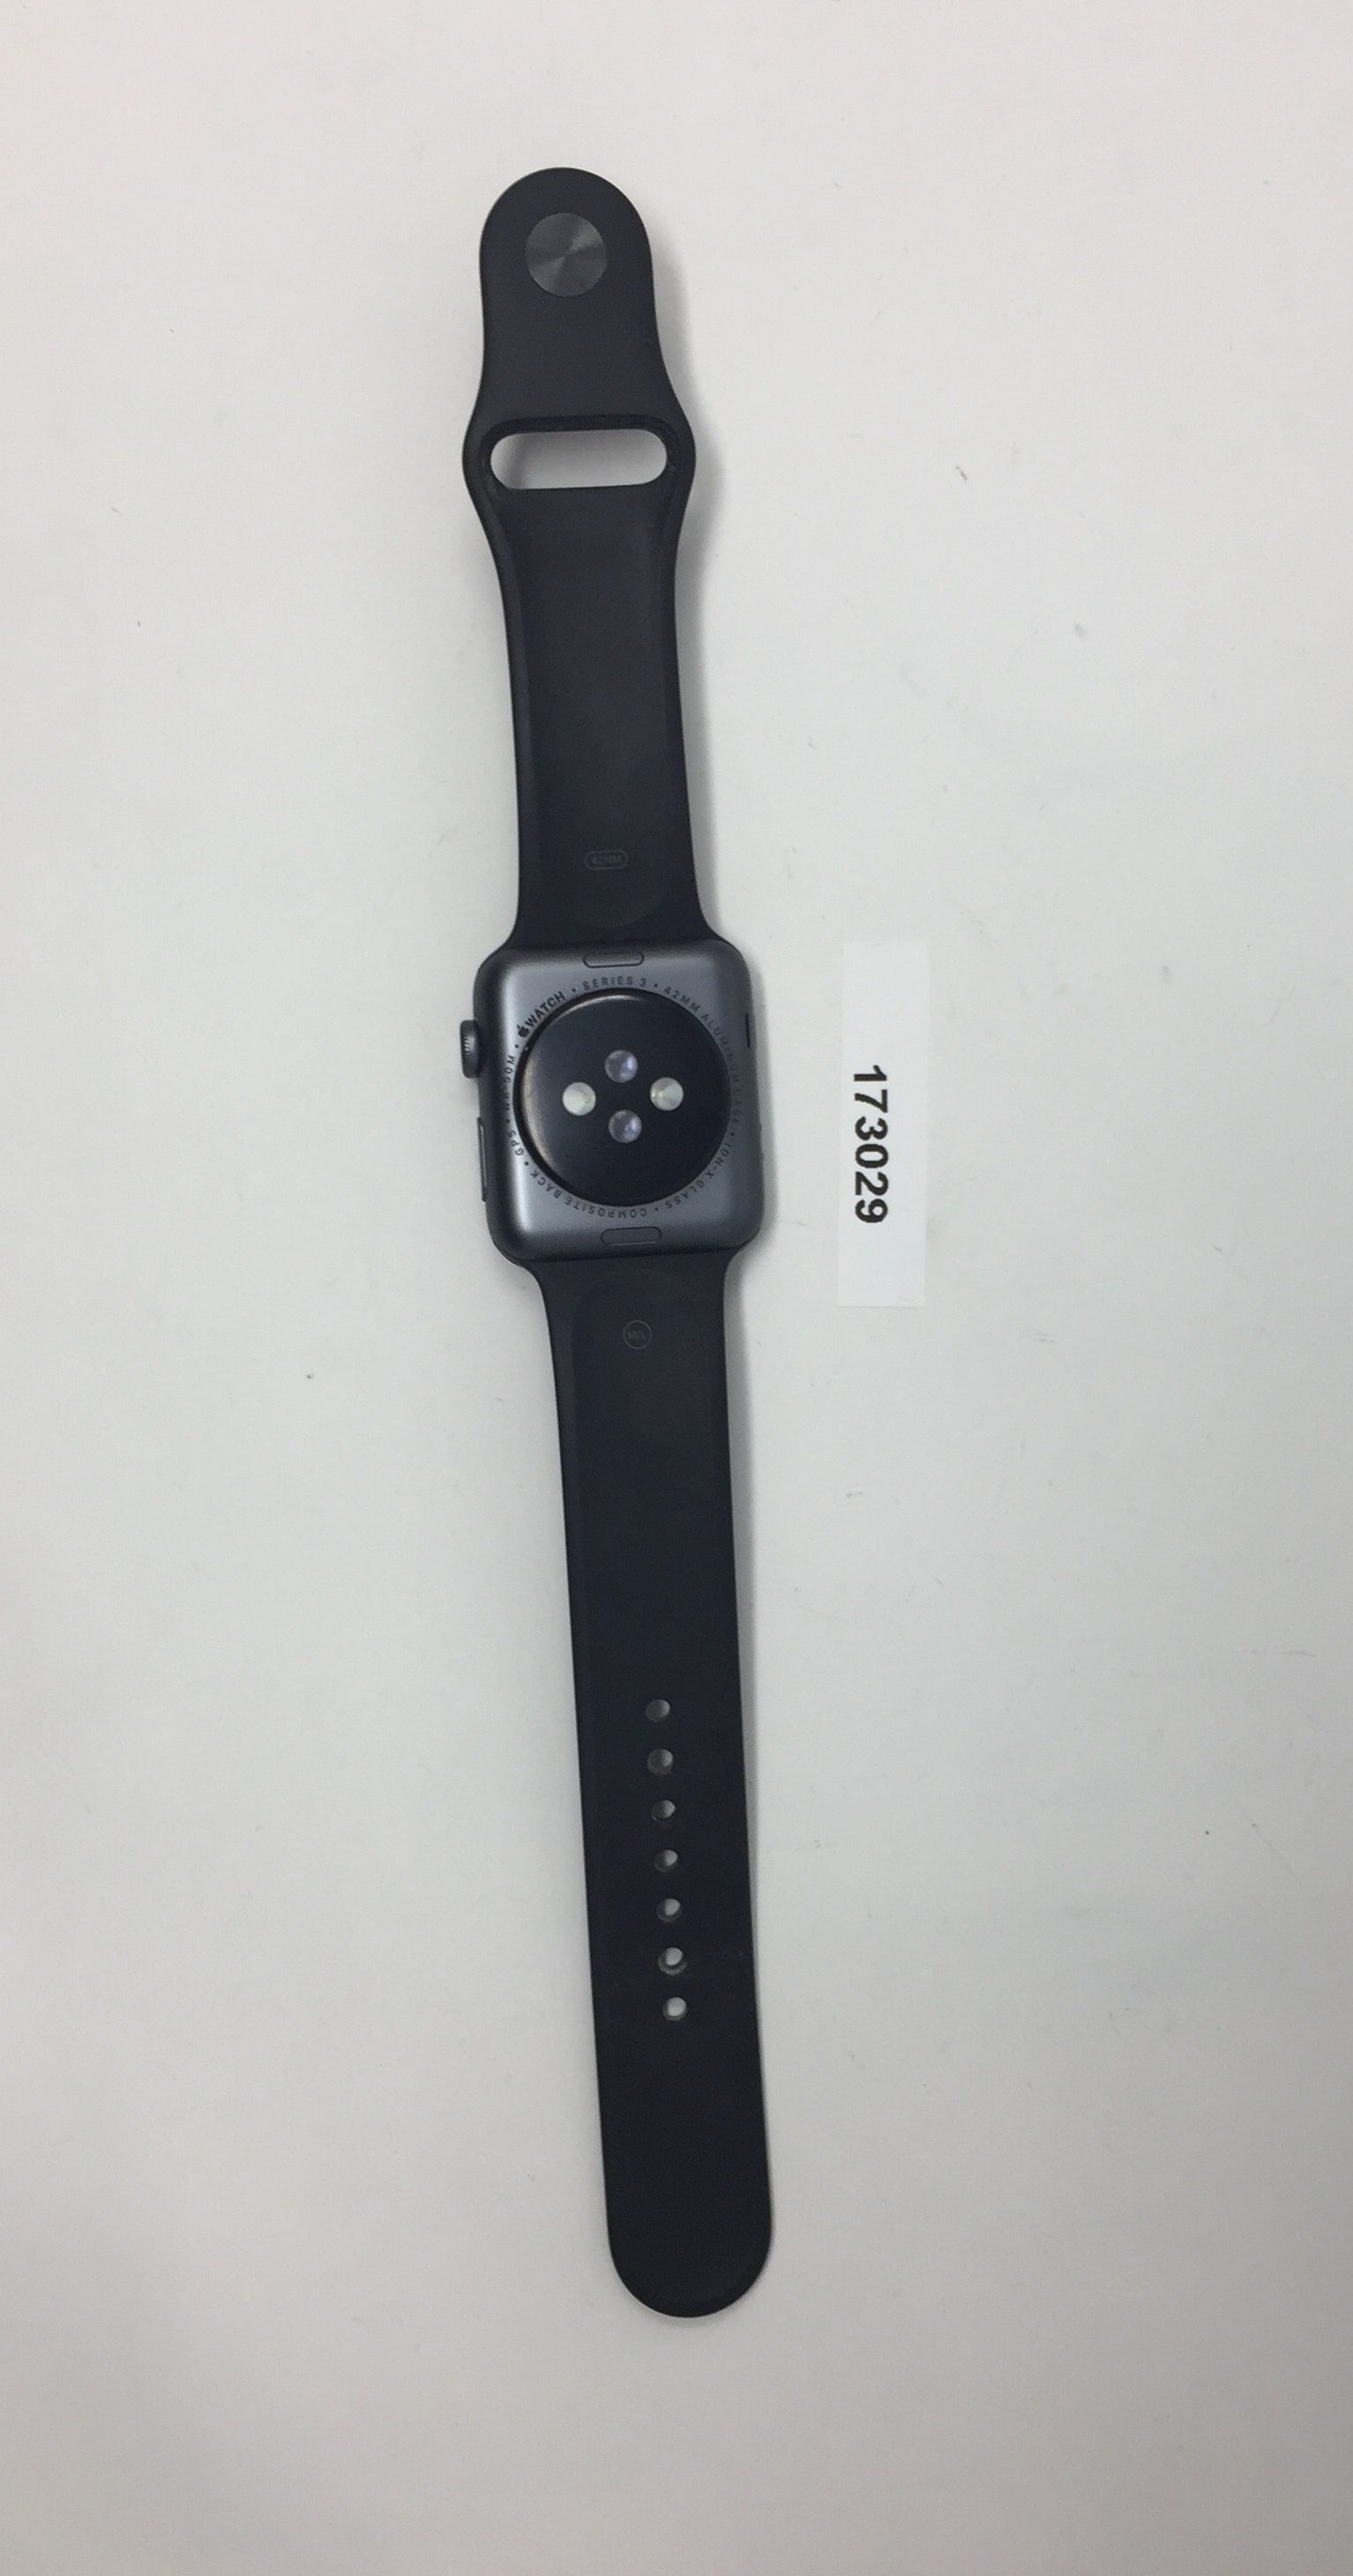 Watch Series 3 (42mm), SPACE GRAY, imagen 4